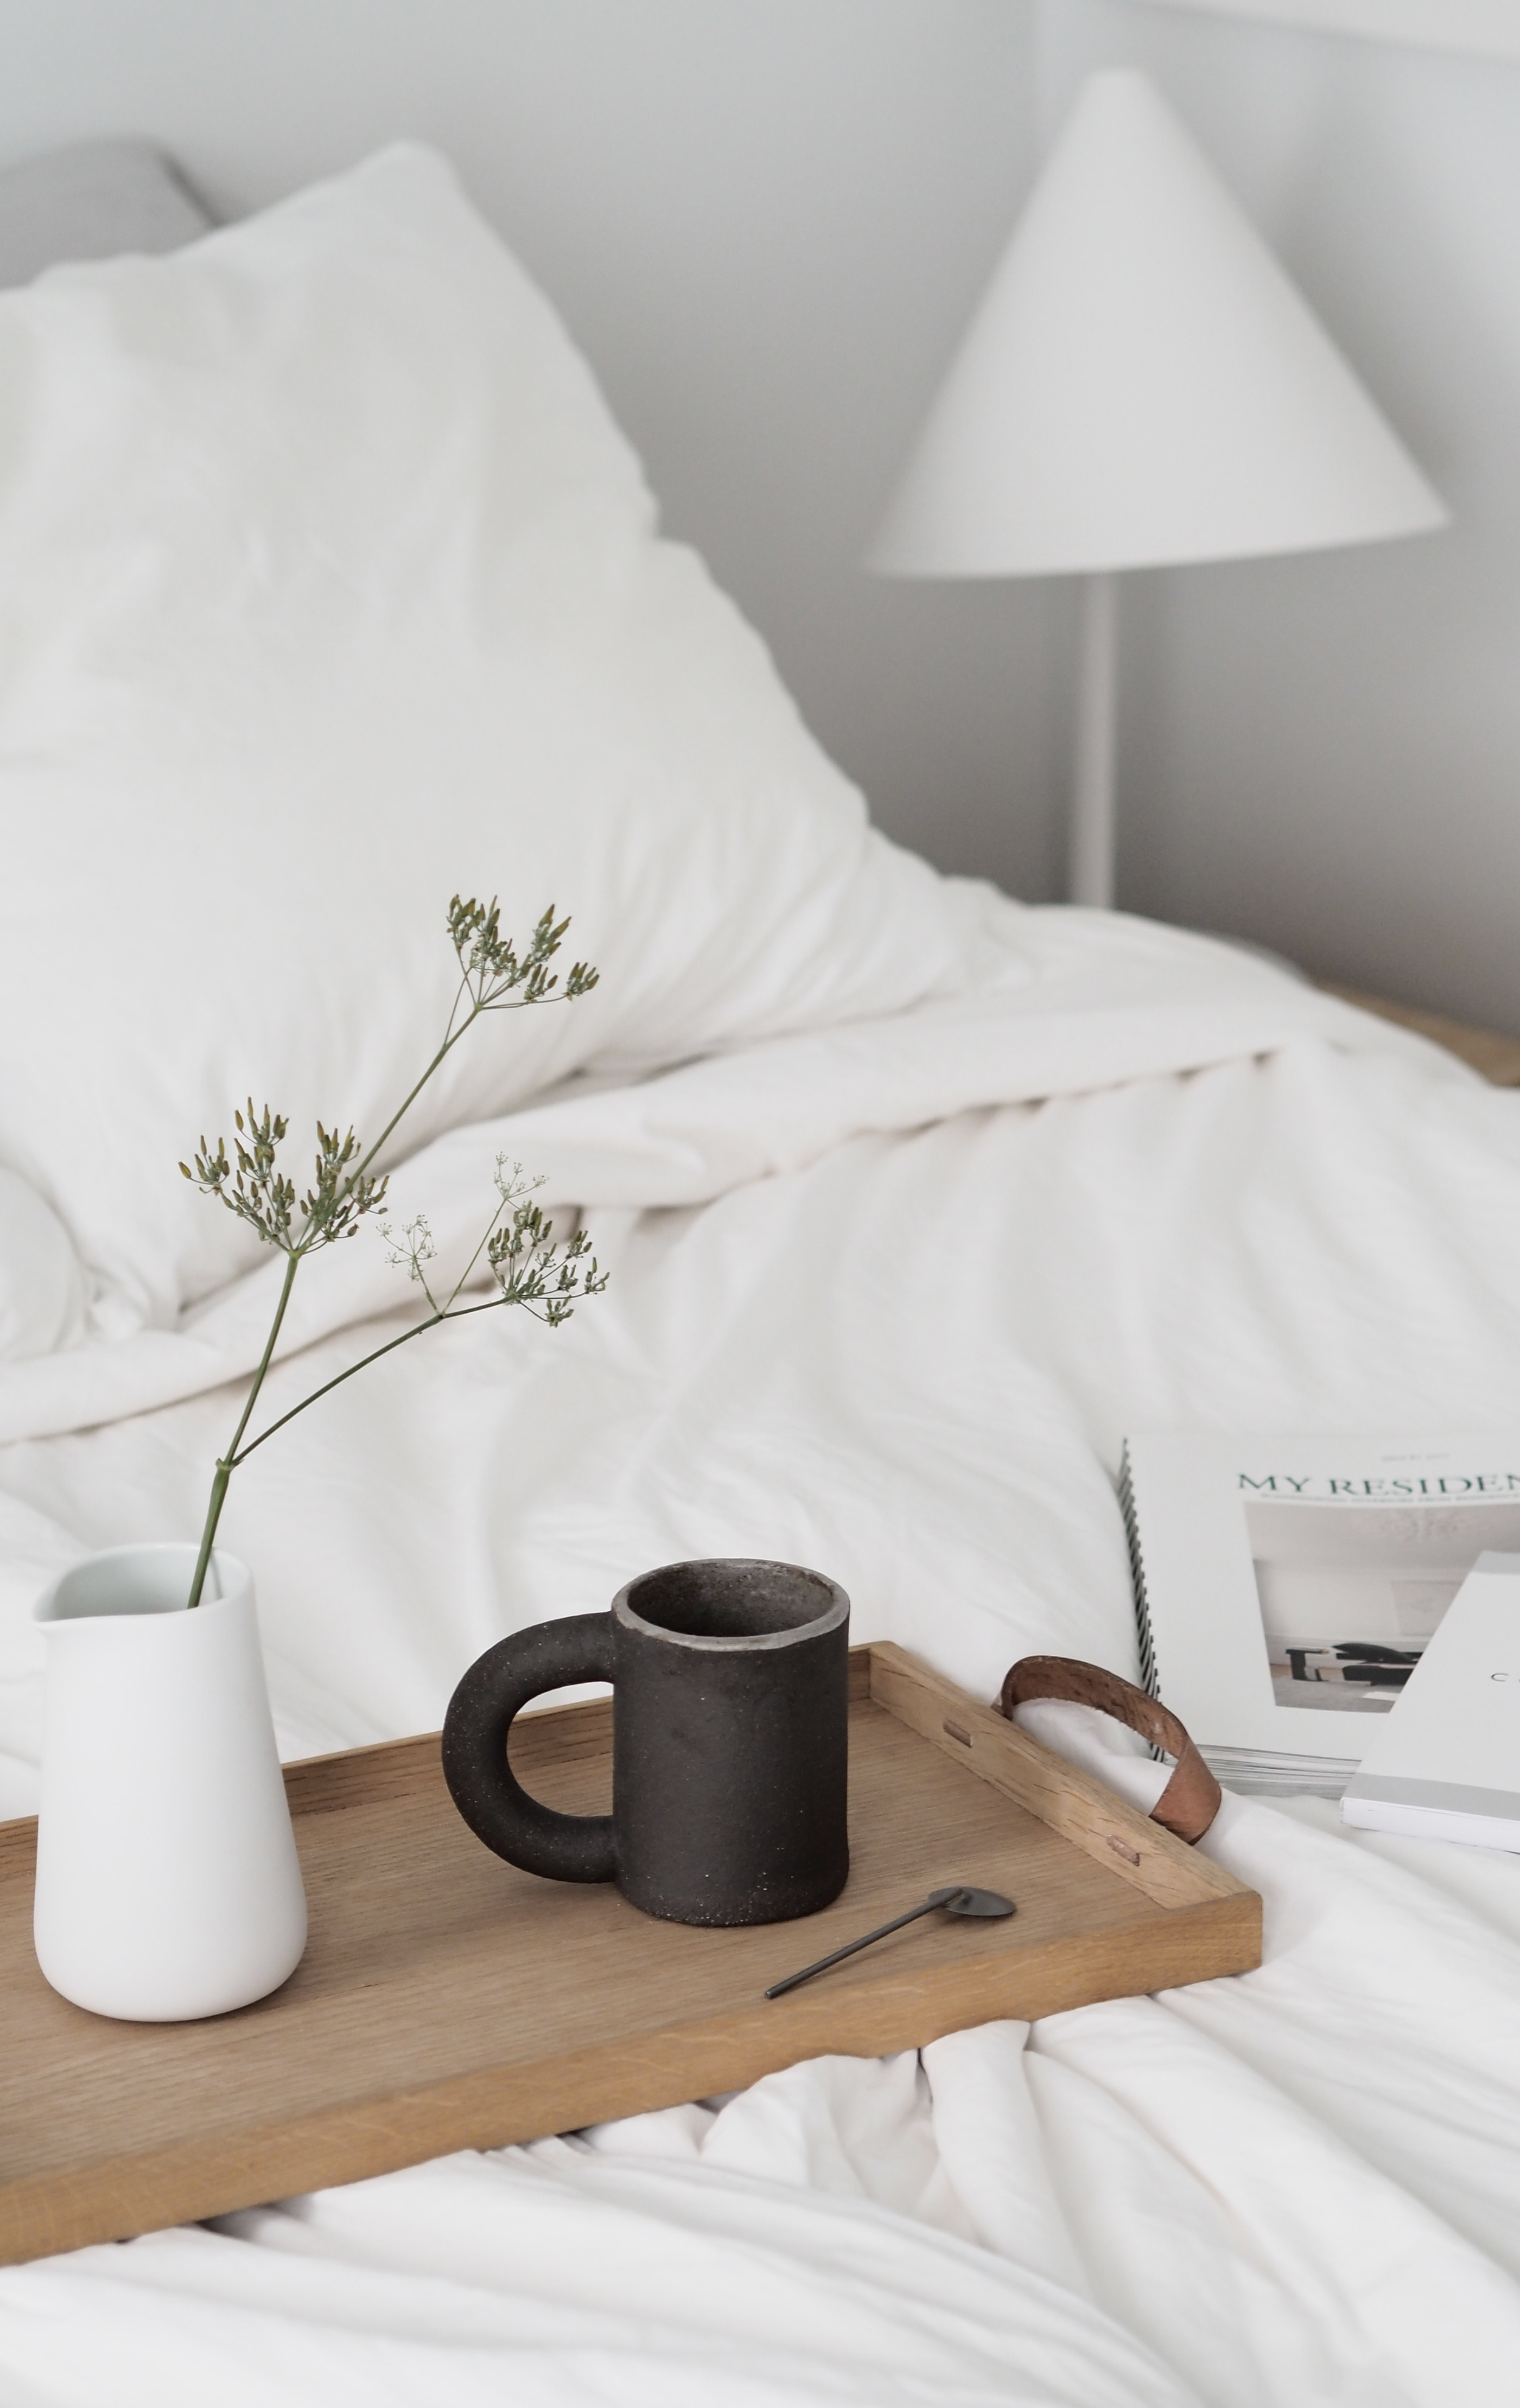 The importance of rest. A Scandinavian minimalist bedroom